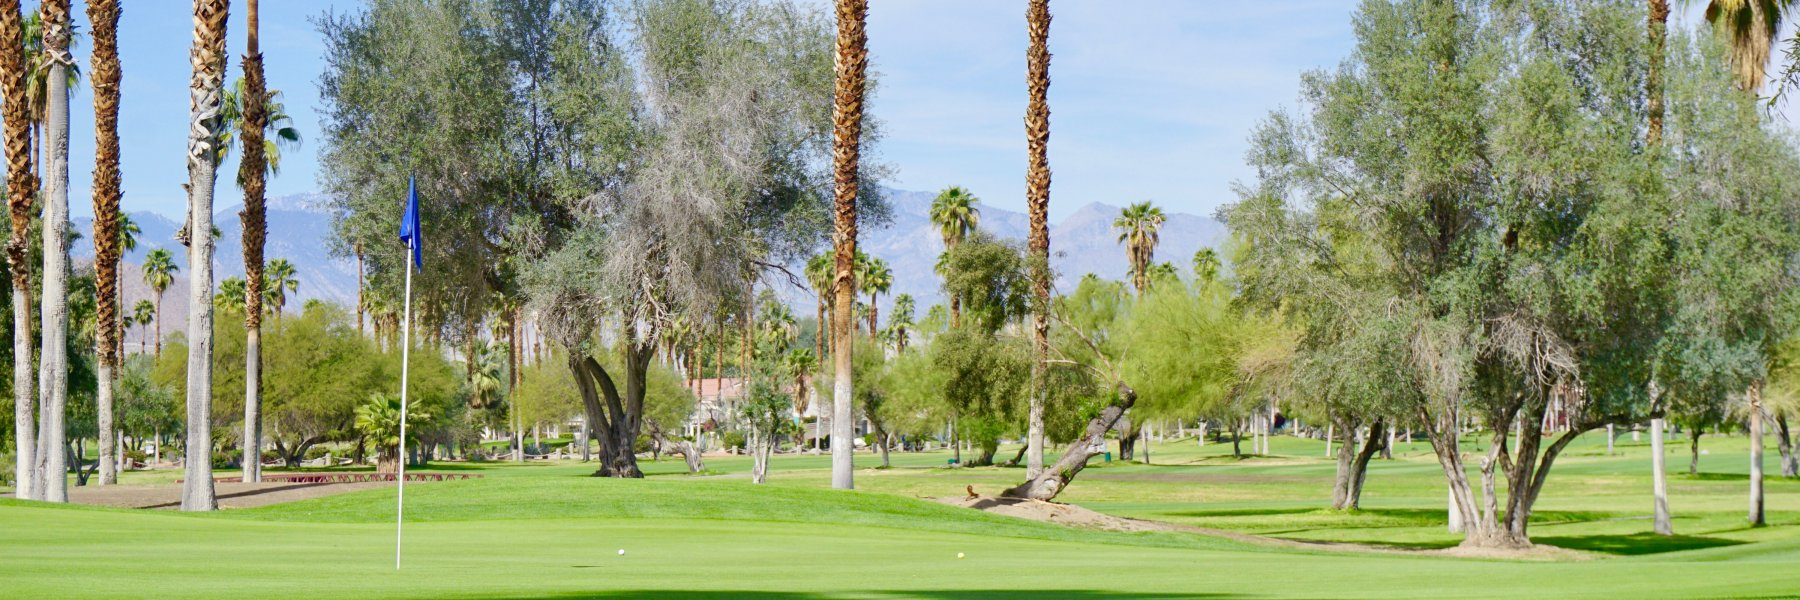 Mesquite Country Club is a community of homes in Palm Springs California